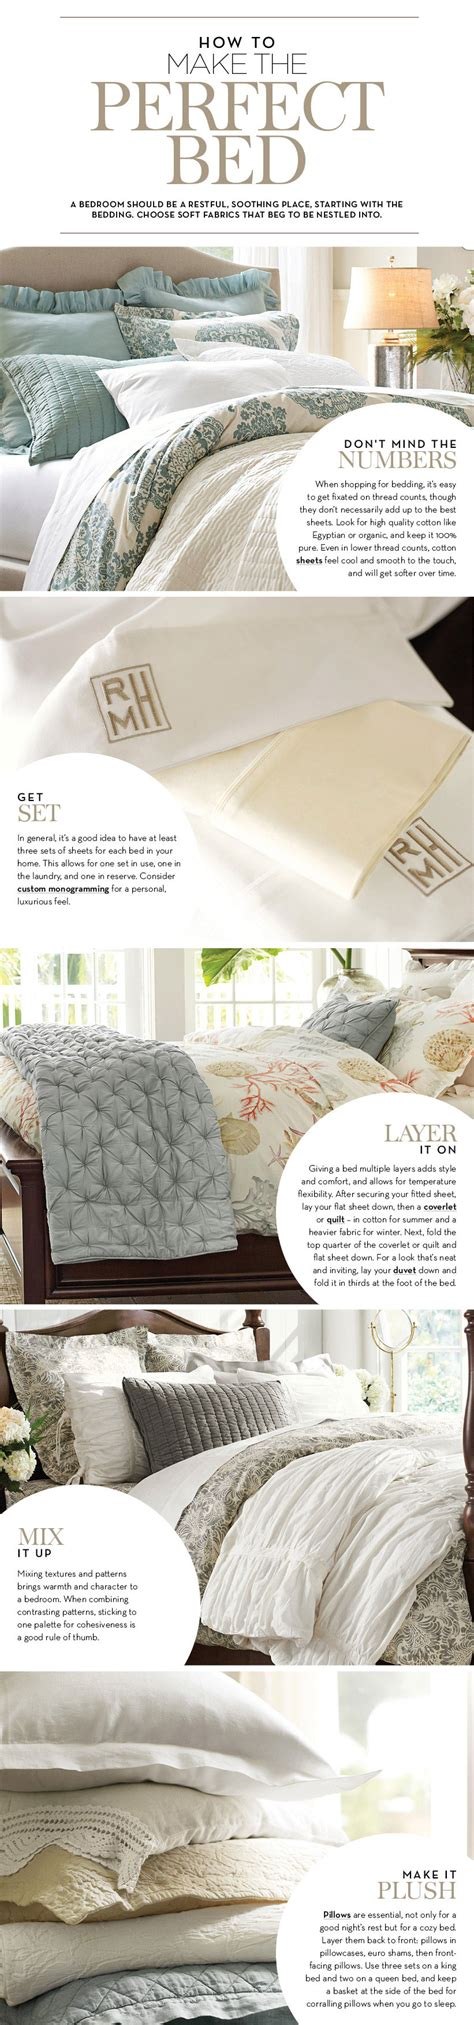 how to make the perfect bed how to make the perfect bed pottery barn home decor and design